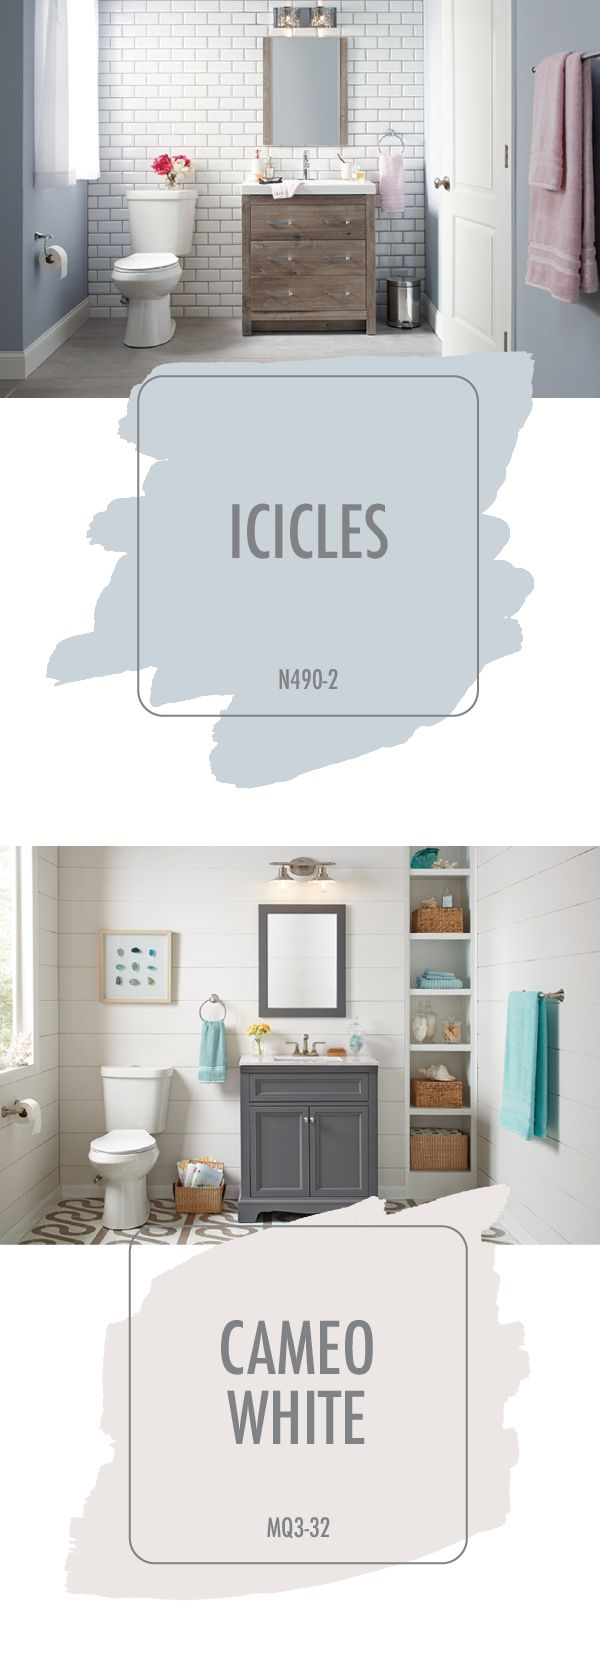 Looking for a little color inspiration to use in your home? Check out the gorgeous neutral shades of Icicles and Cameo White from BEHR Paint. These modern hues look great in a neutral bathroom color palette. Check out this article from The Home Depot to see how you can incorporate these colors with other interior design trends, like marble countertops, shiplap walls, and stand-alone vanities.